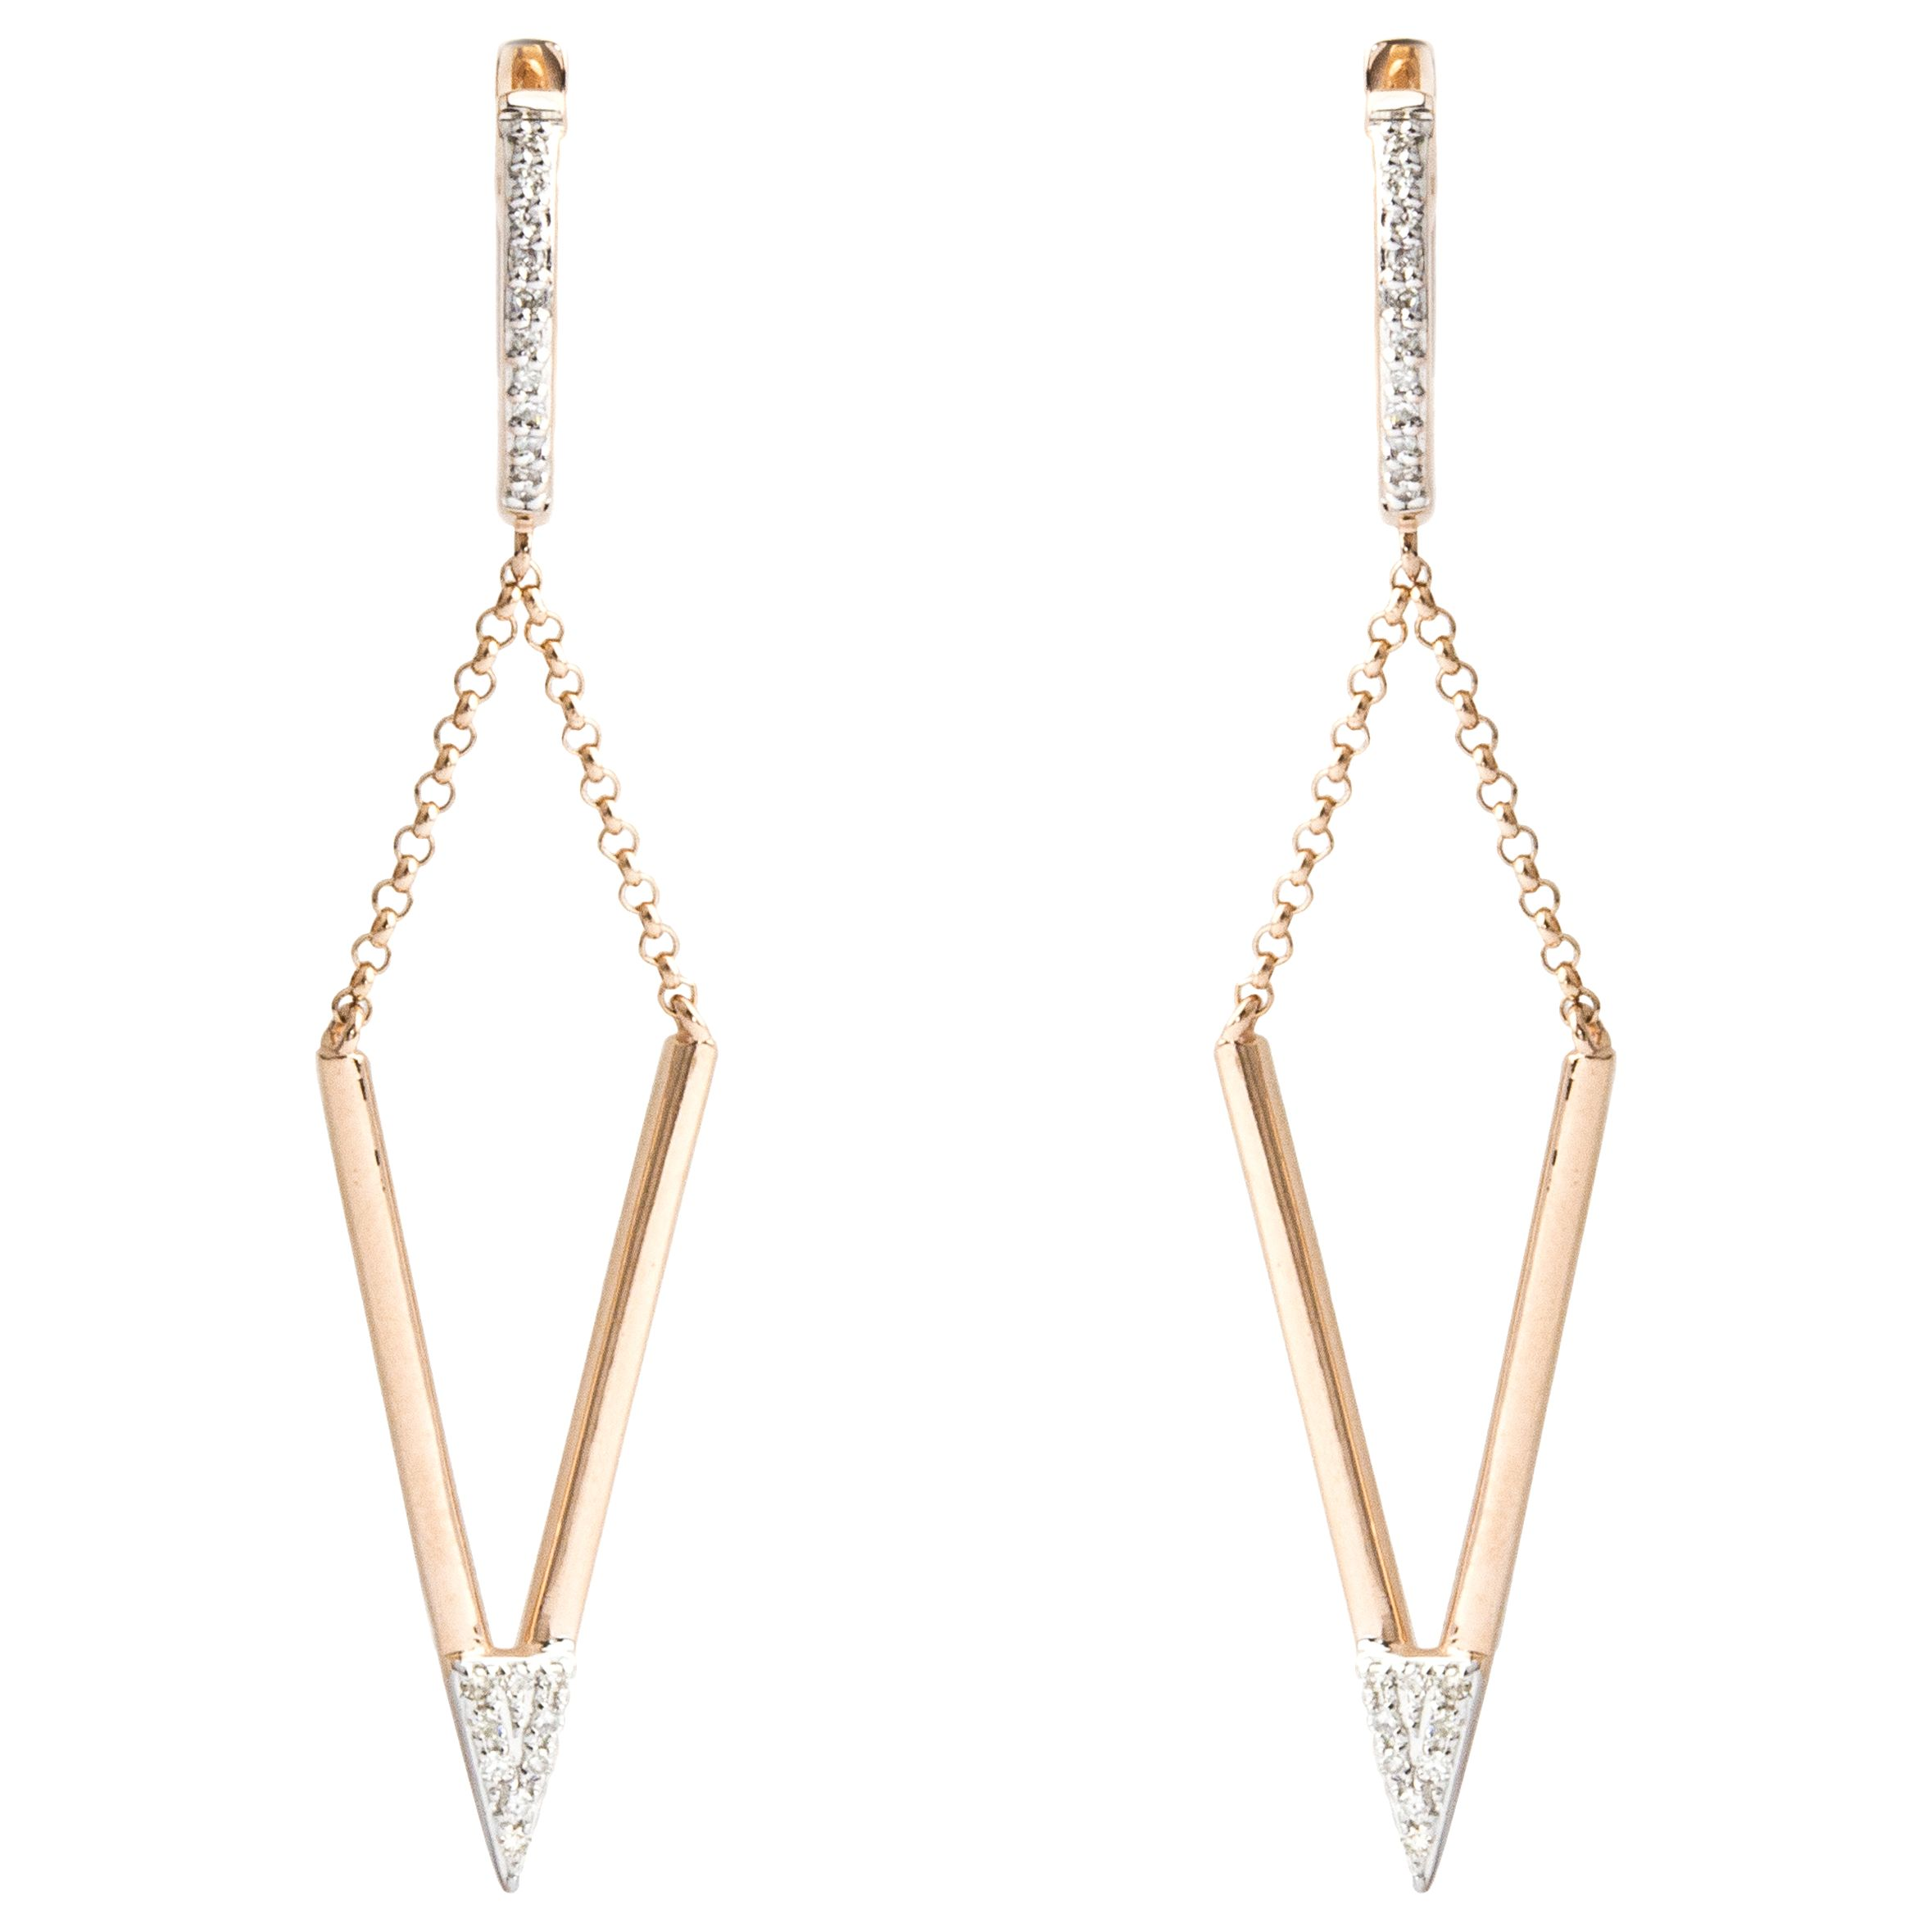 A B Davis A B Davis 9ct Gold Diamond Triangular Drop Earrings, Rose Gold